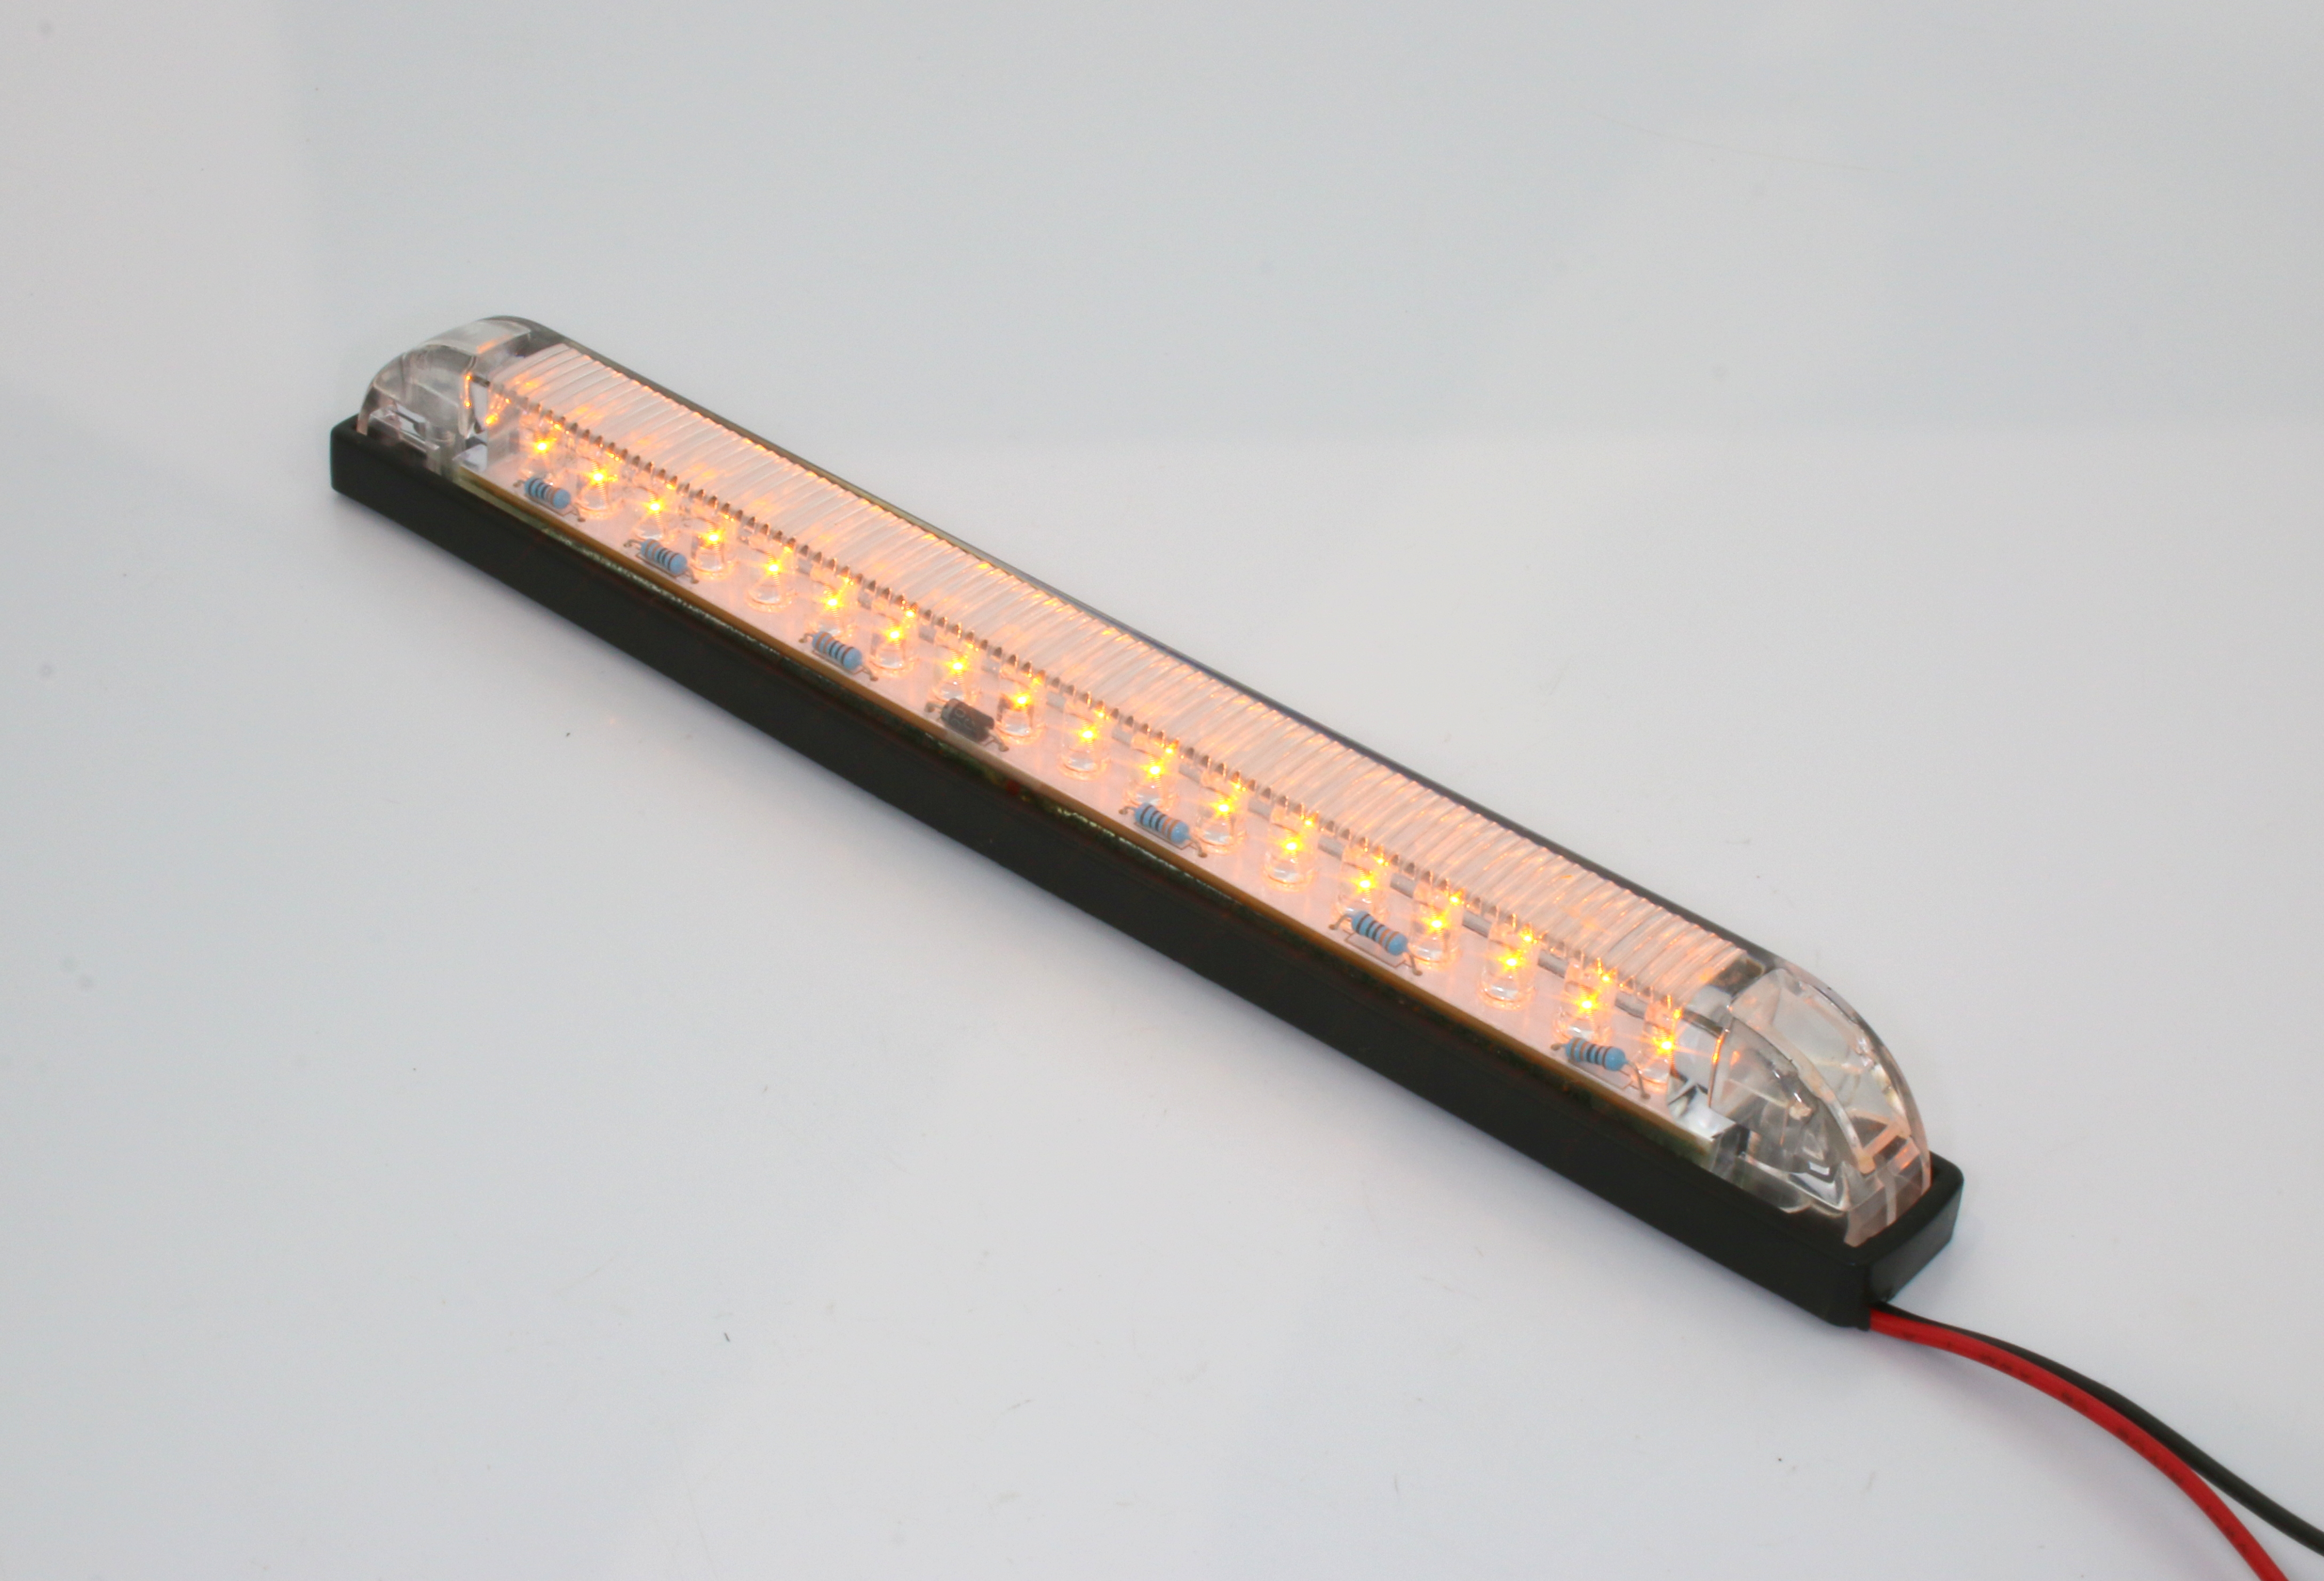 Red or amber led light strip heavy duty 12vdc 8 length red or amber led light strip heavy duty 12vdc 8 length aloadofball Image collections